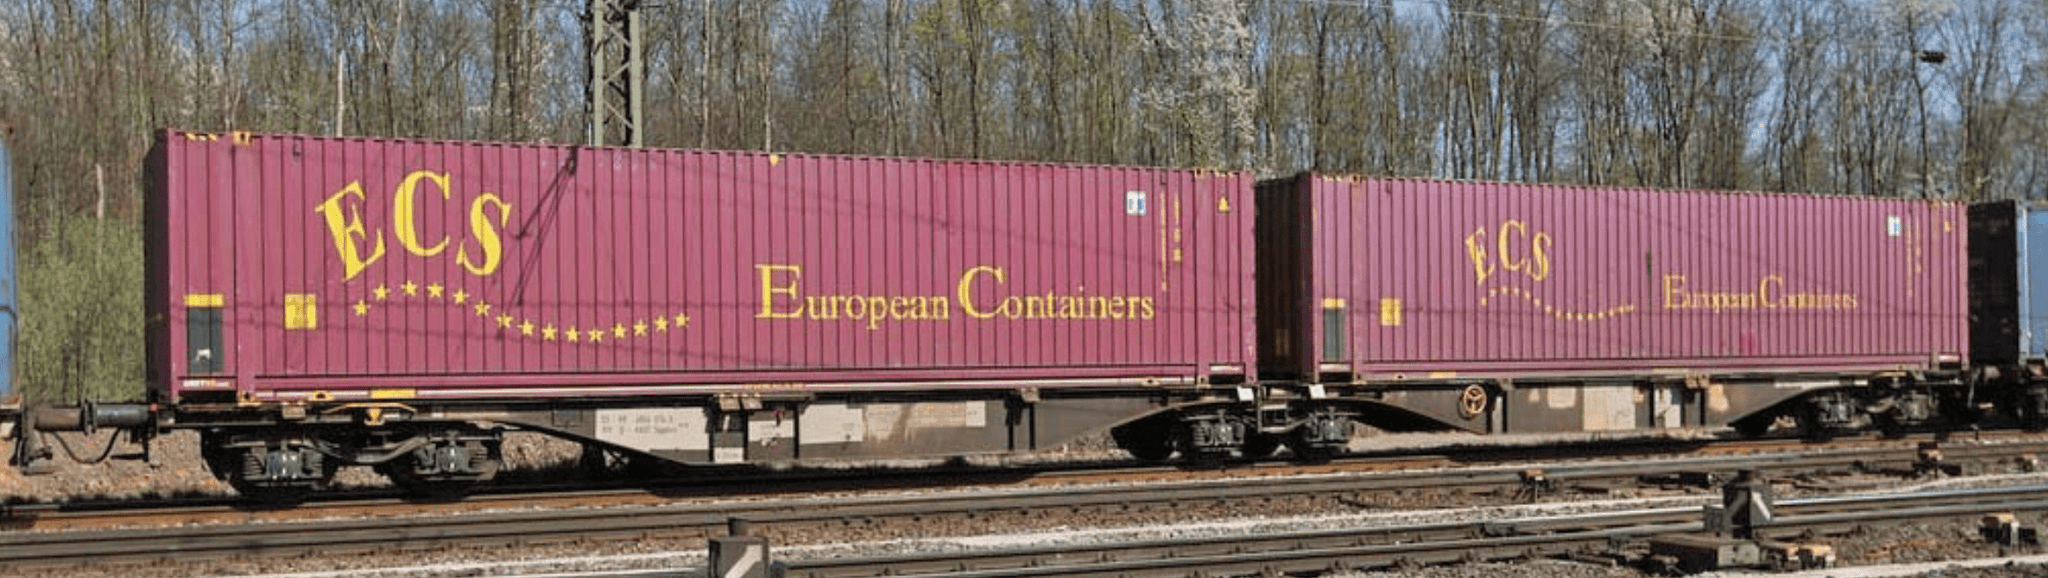 "B-Models 59100  Container Cars Sggmrss 90 ""ECS"" - The Scuderia 46"